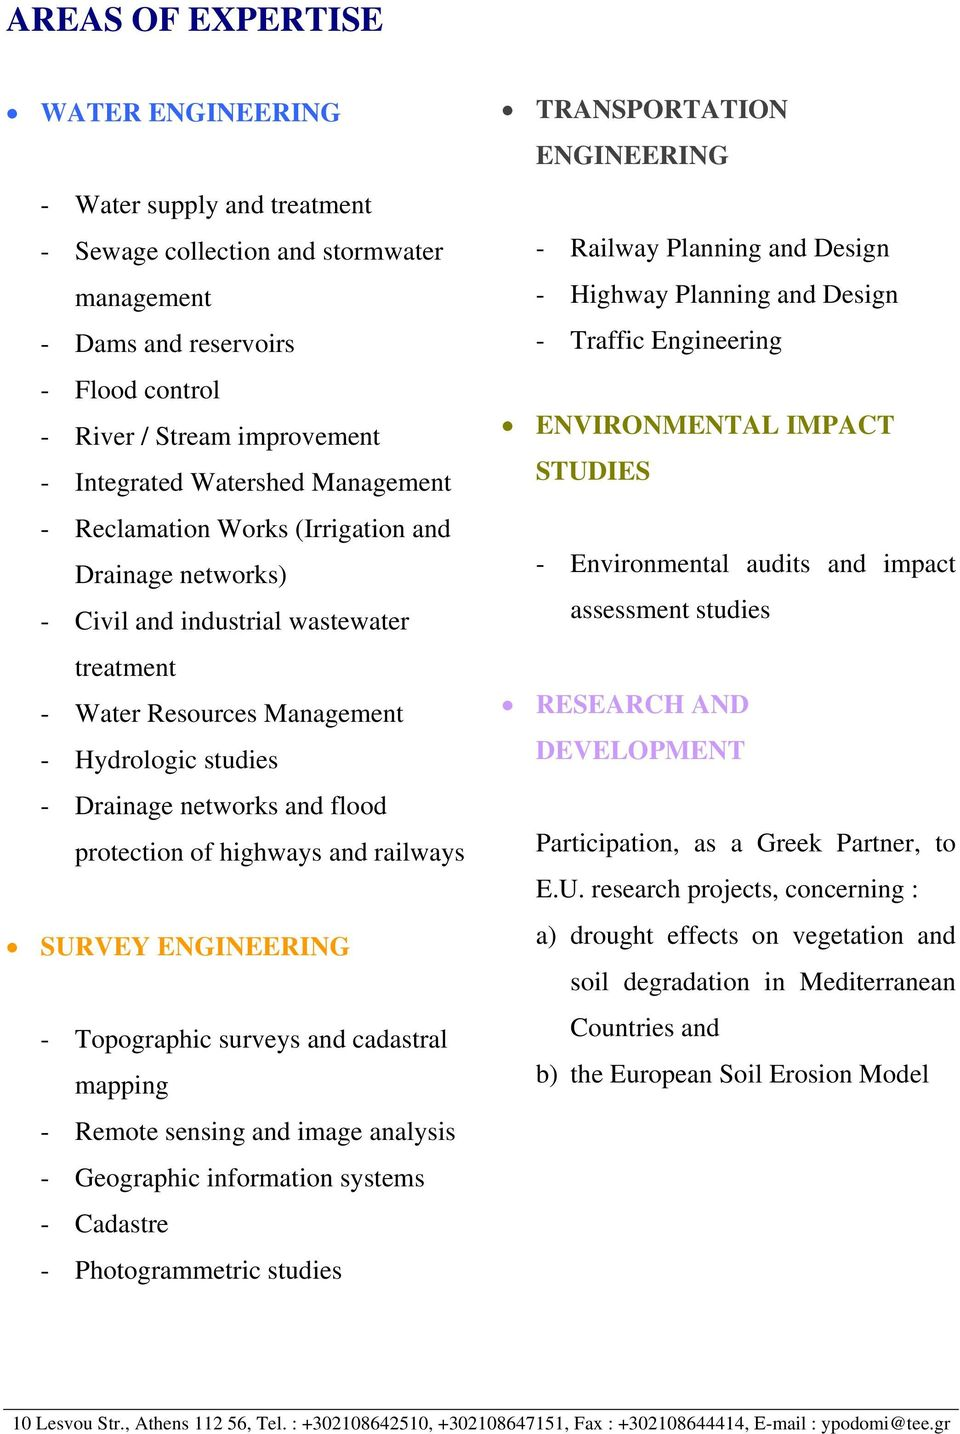 protection of highways and railways SURVEY ENGINEERING - Topographic surveys and cadastral mapping - Remote sensing and image analysis - Geographic information systems - Cadastre - Photogrammetric